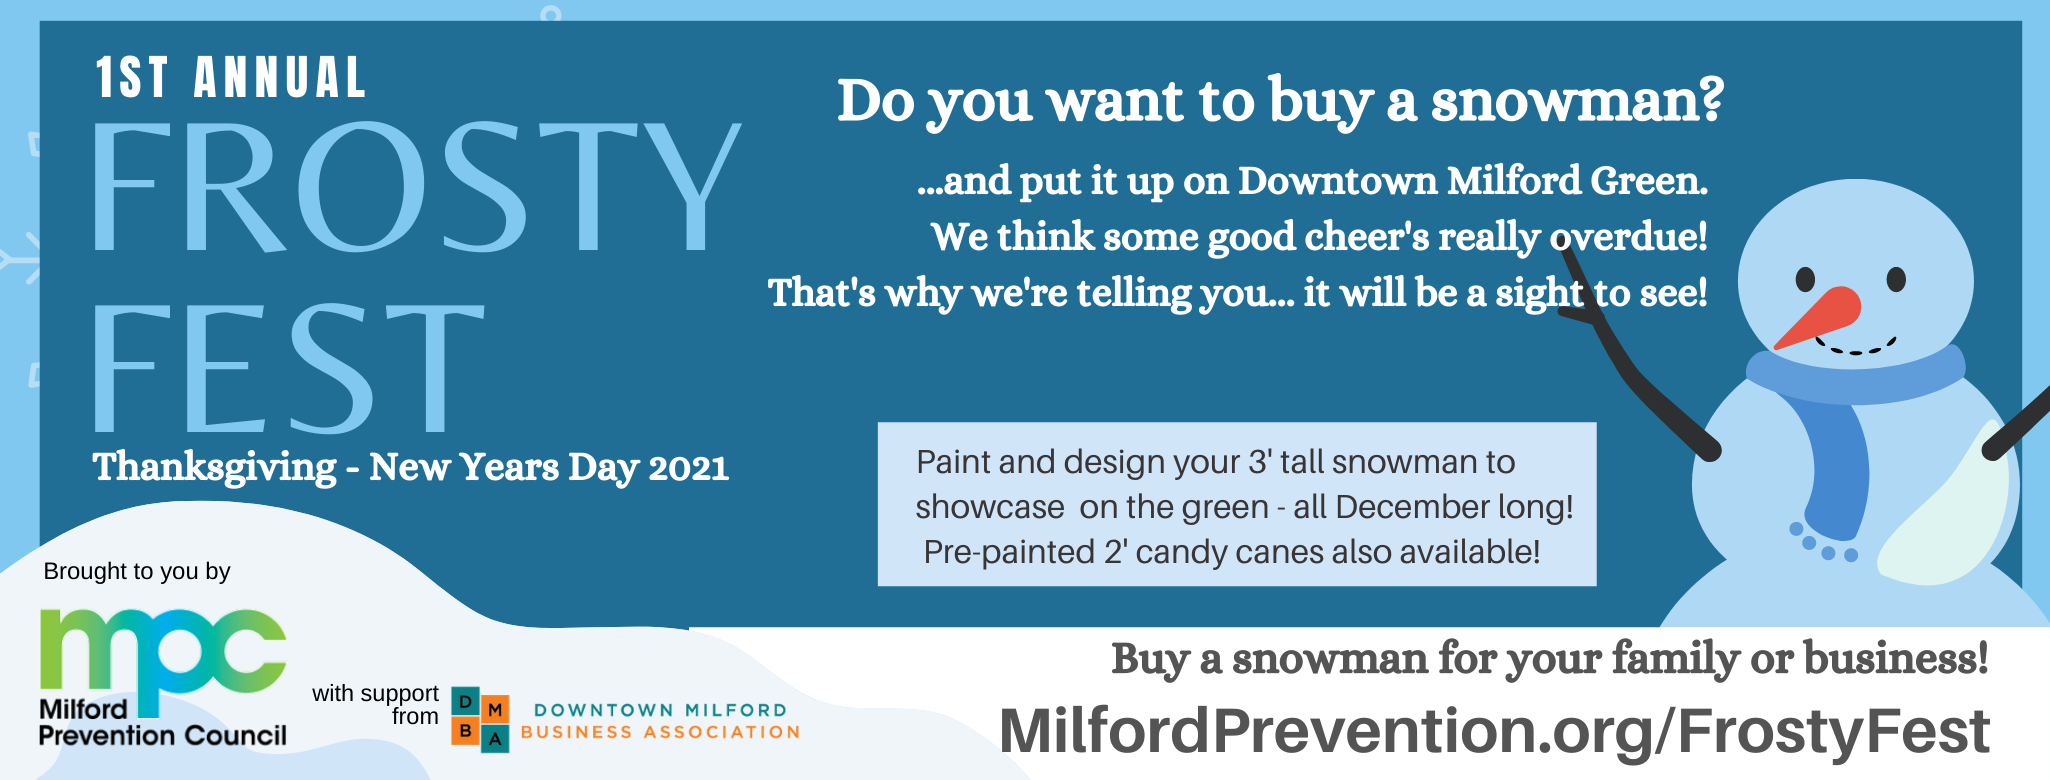 Frosty Fest 2020: Downtown Milford Green